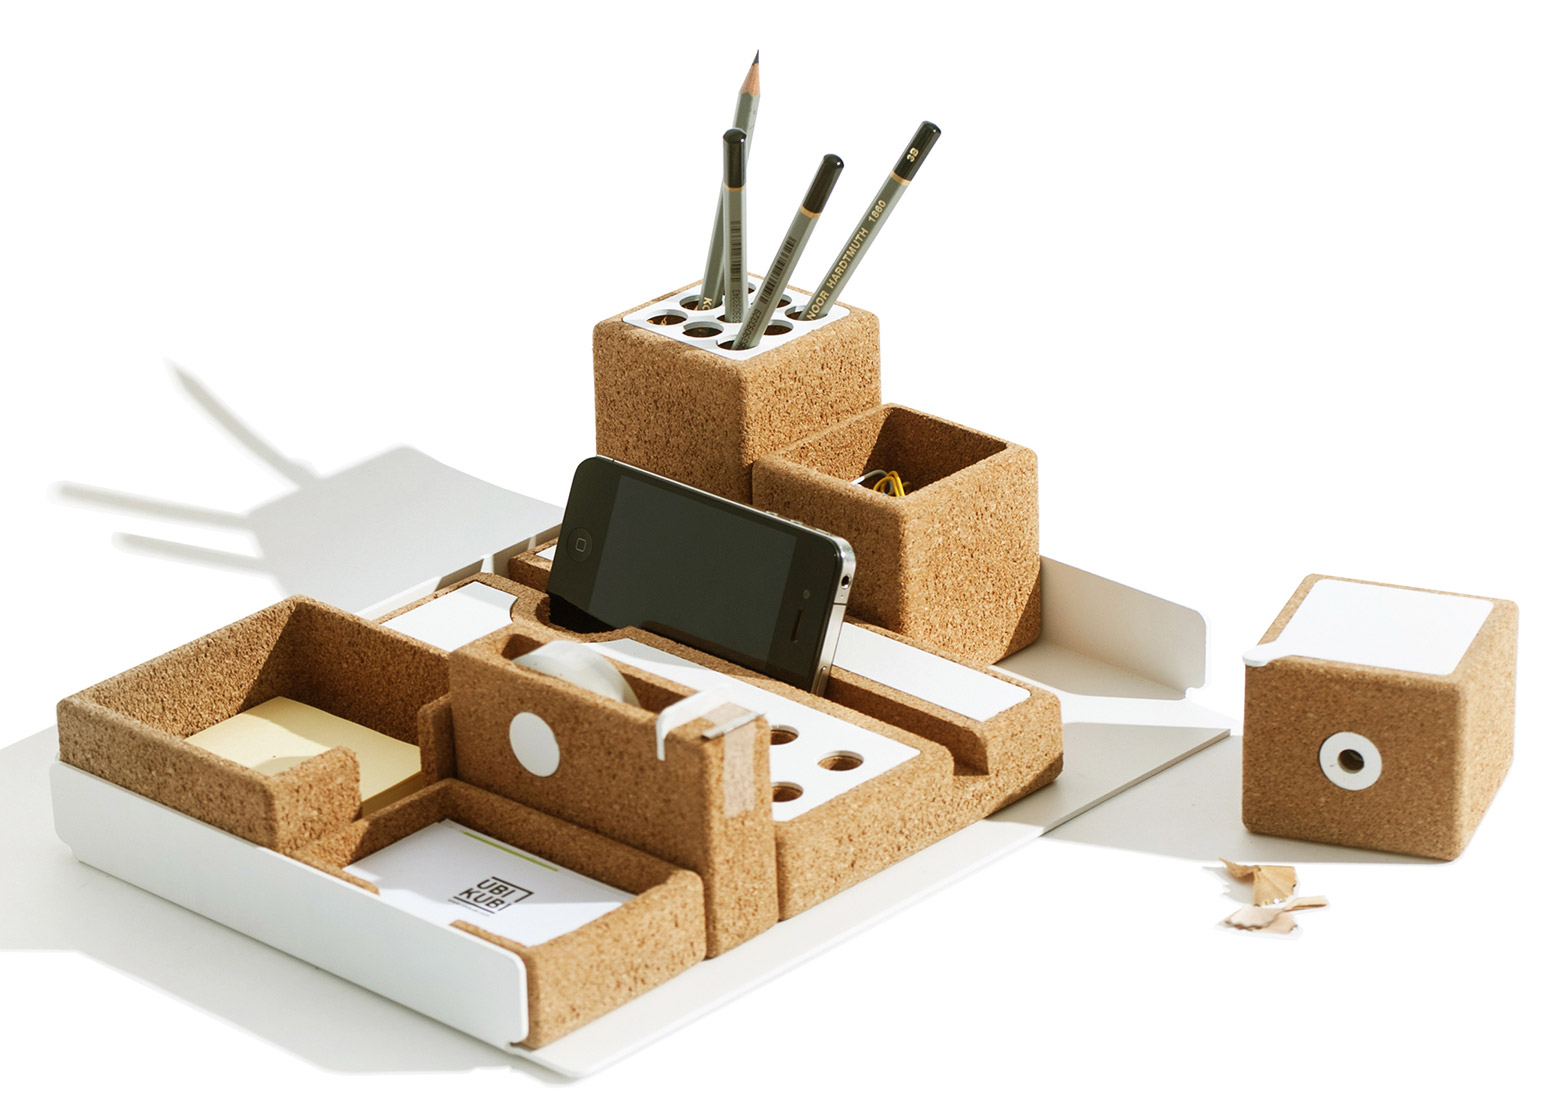 Niu desk accessories by Ubikubi